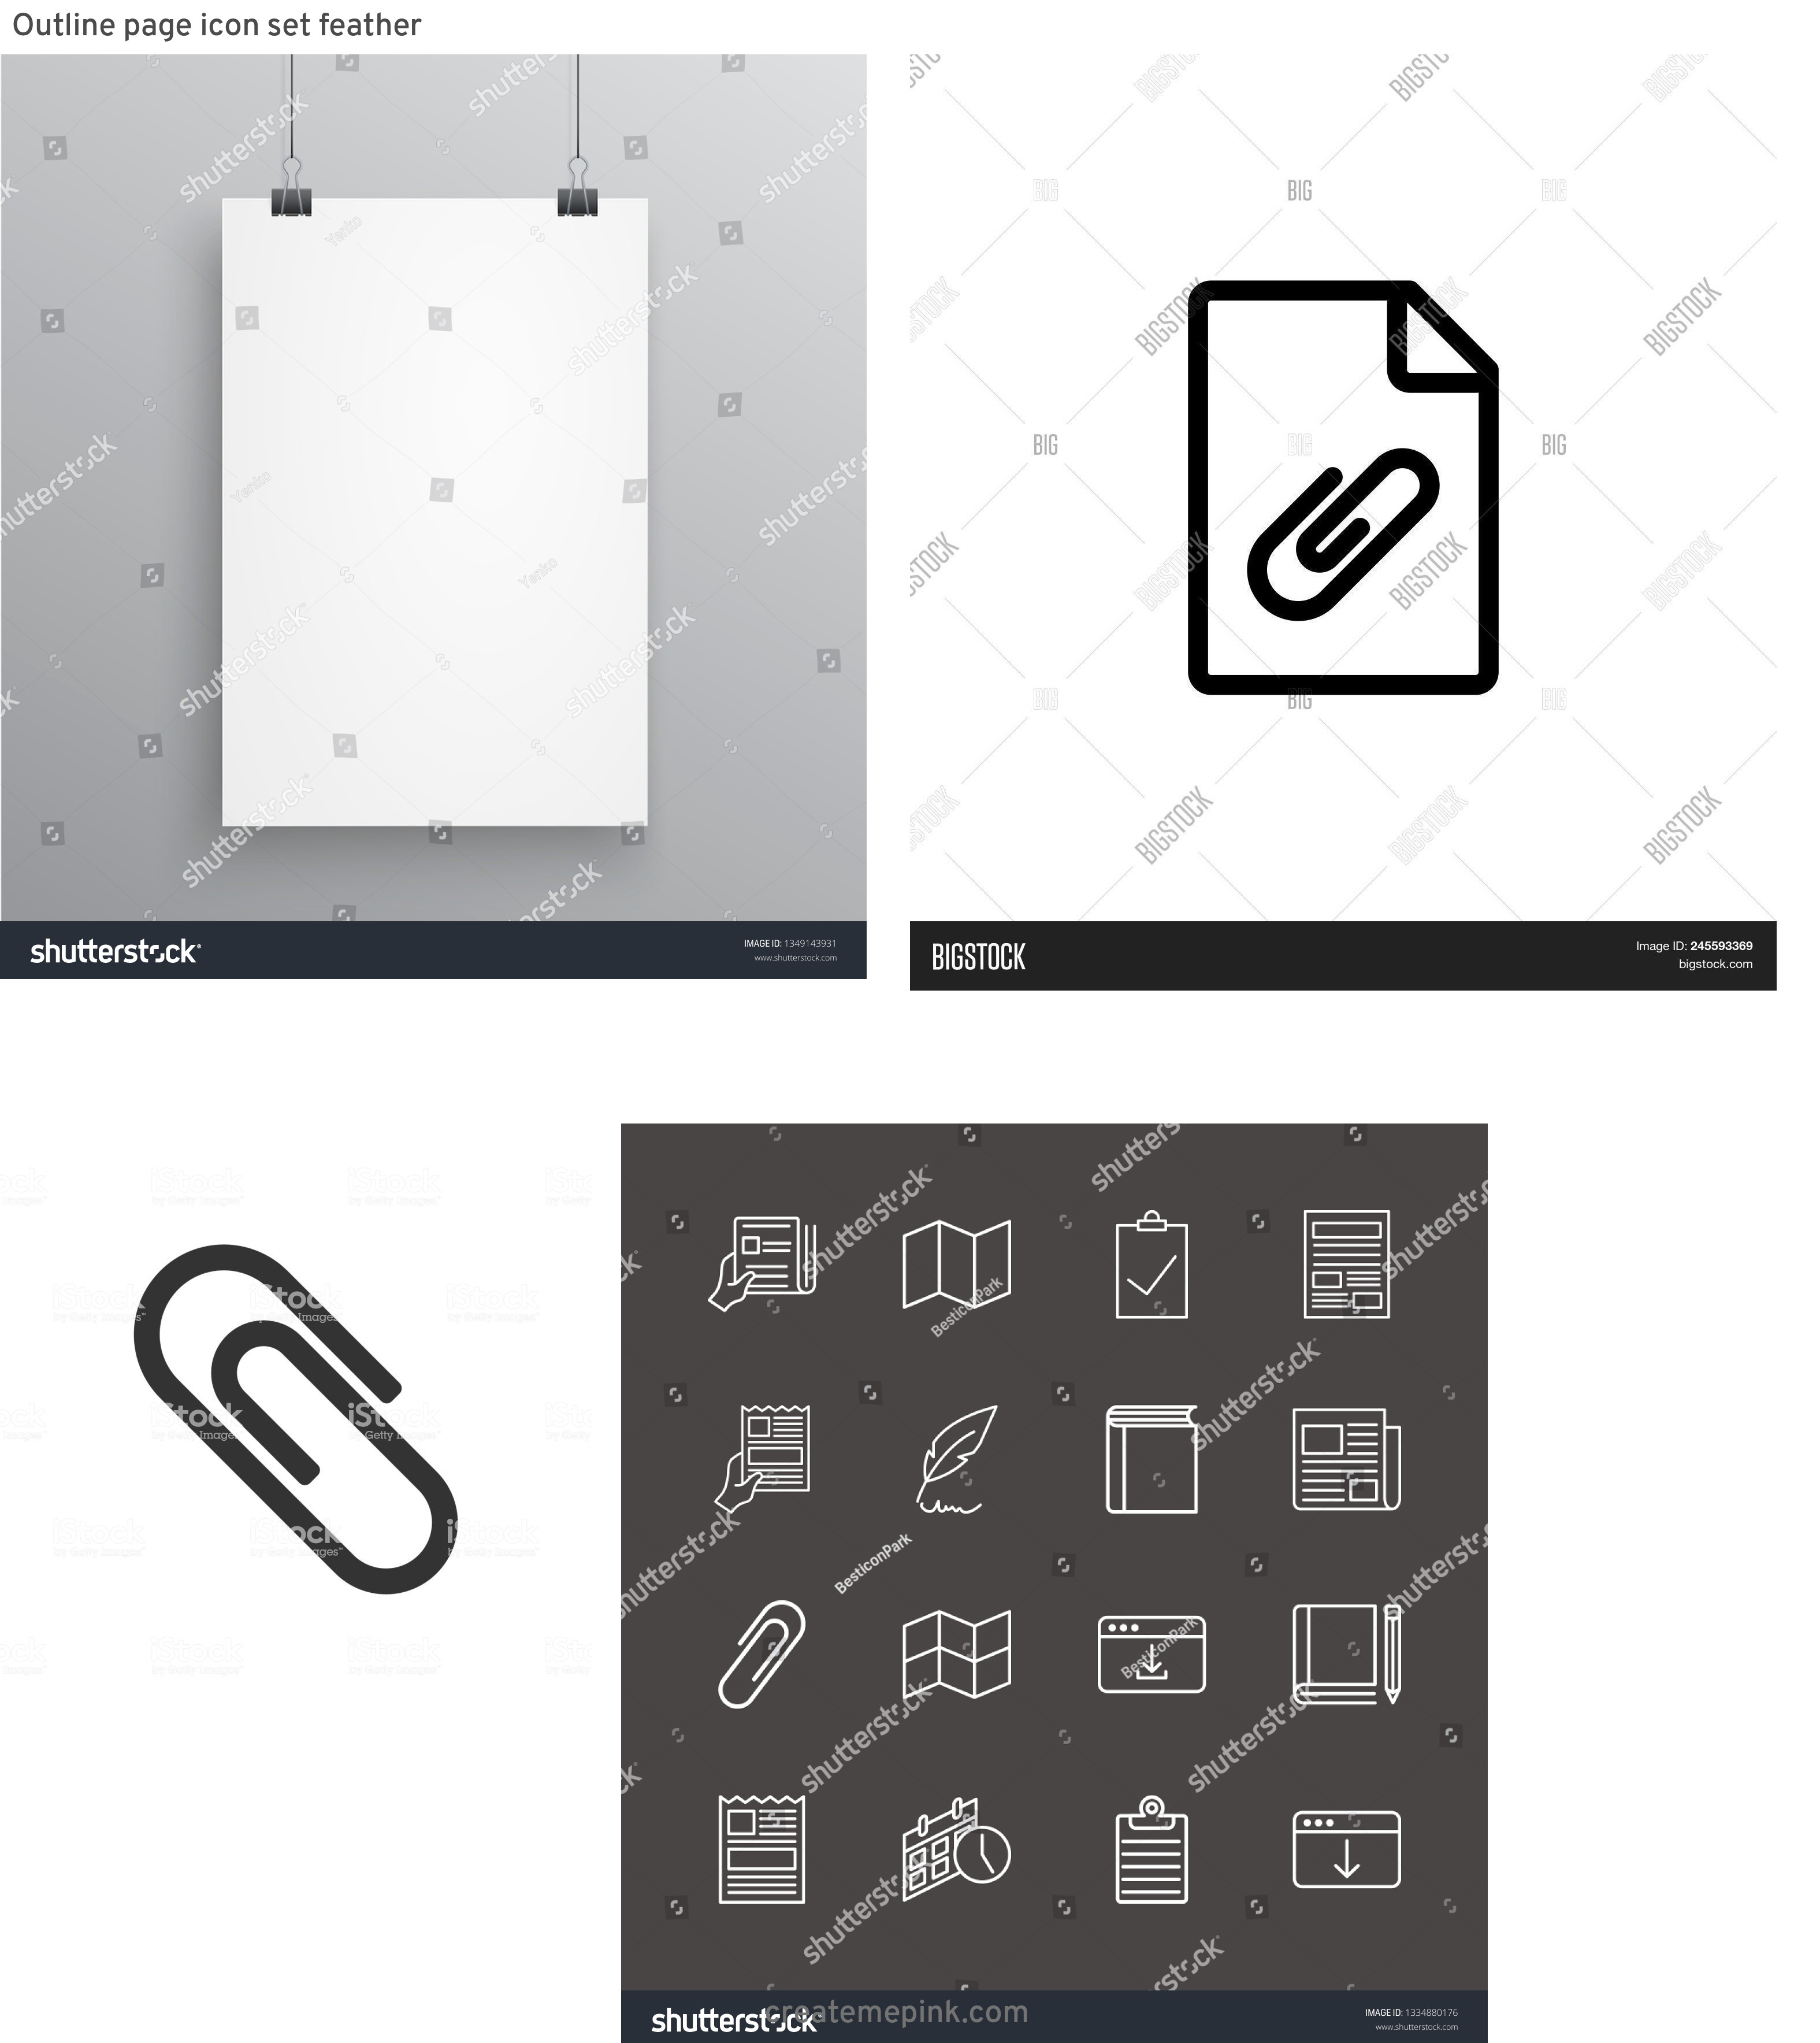 Vector Paper Clip On Page: Outline Page Icon Set Feather